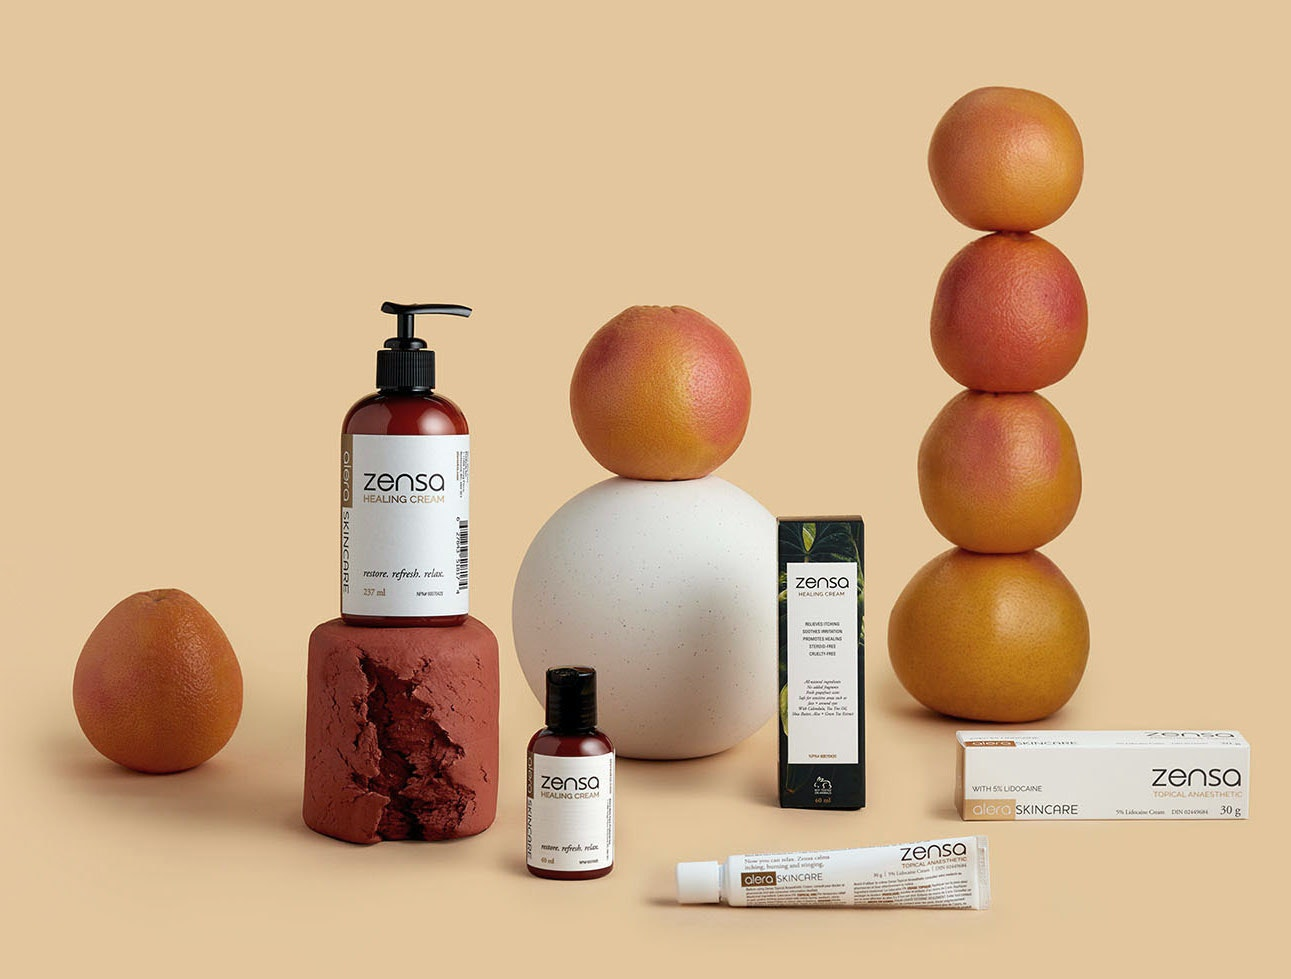 All products by Zensa Skin Care - Numbing Cream, Healing Cream, and other skincare products for tattoos, waxing, lasers, injections, and overall health.